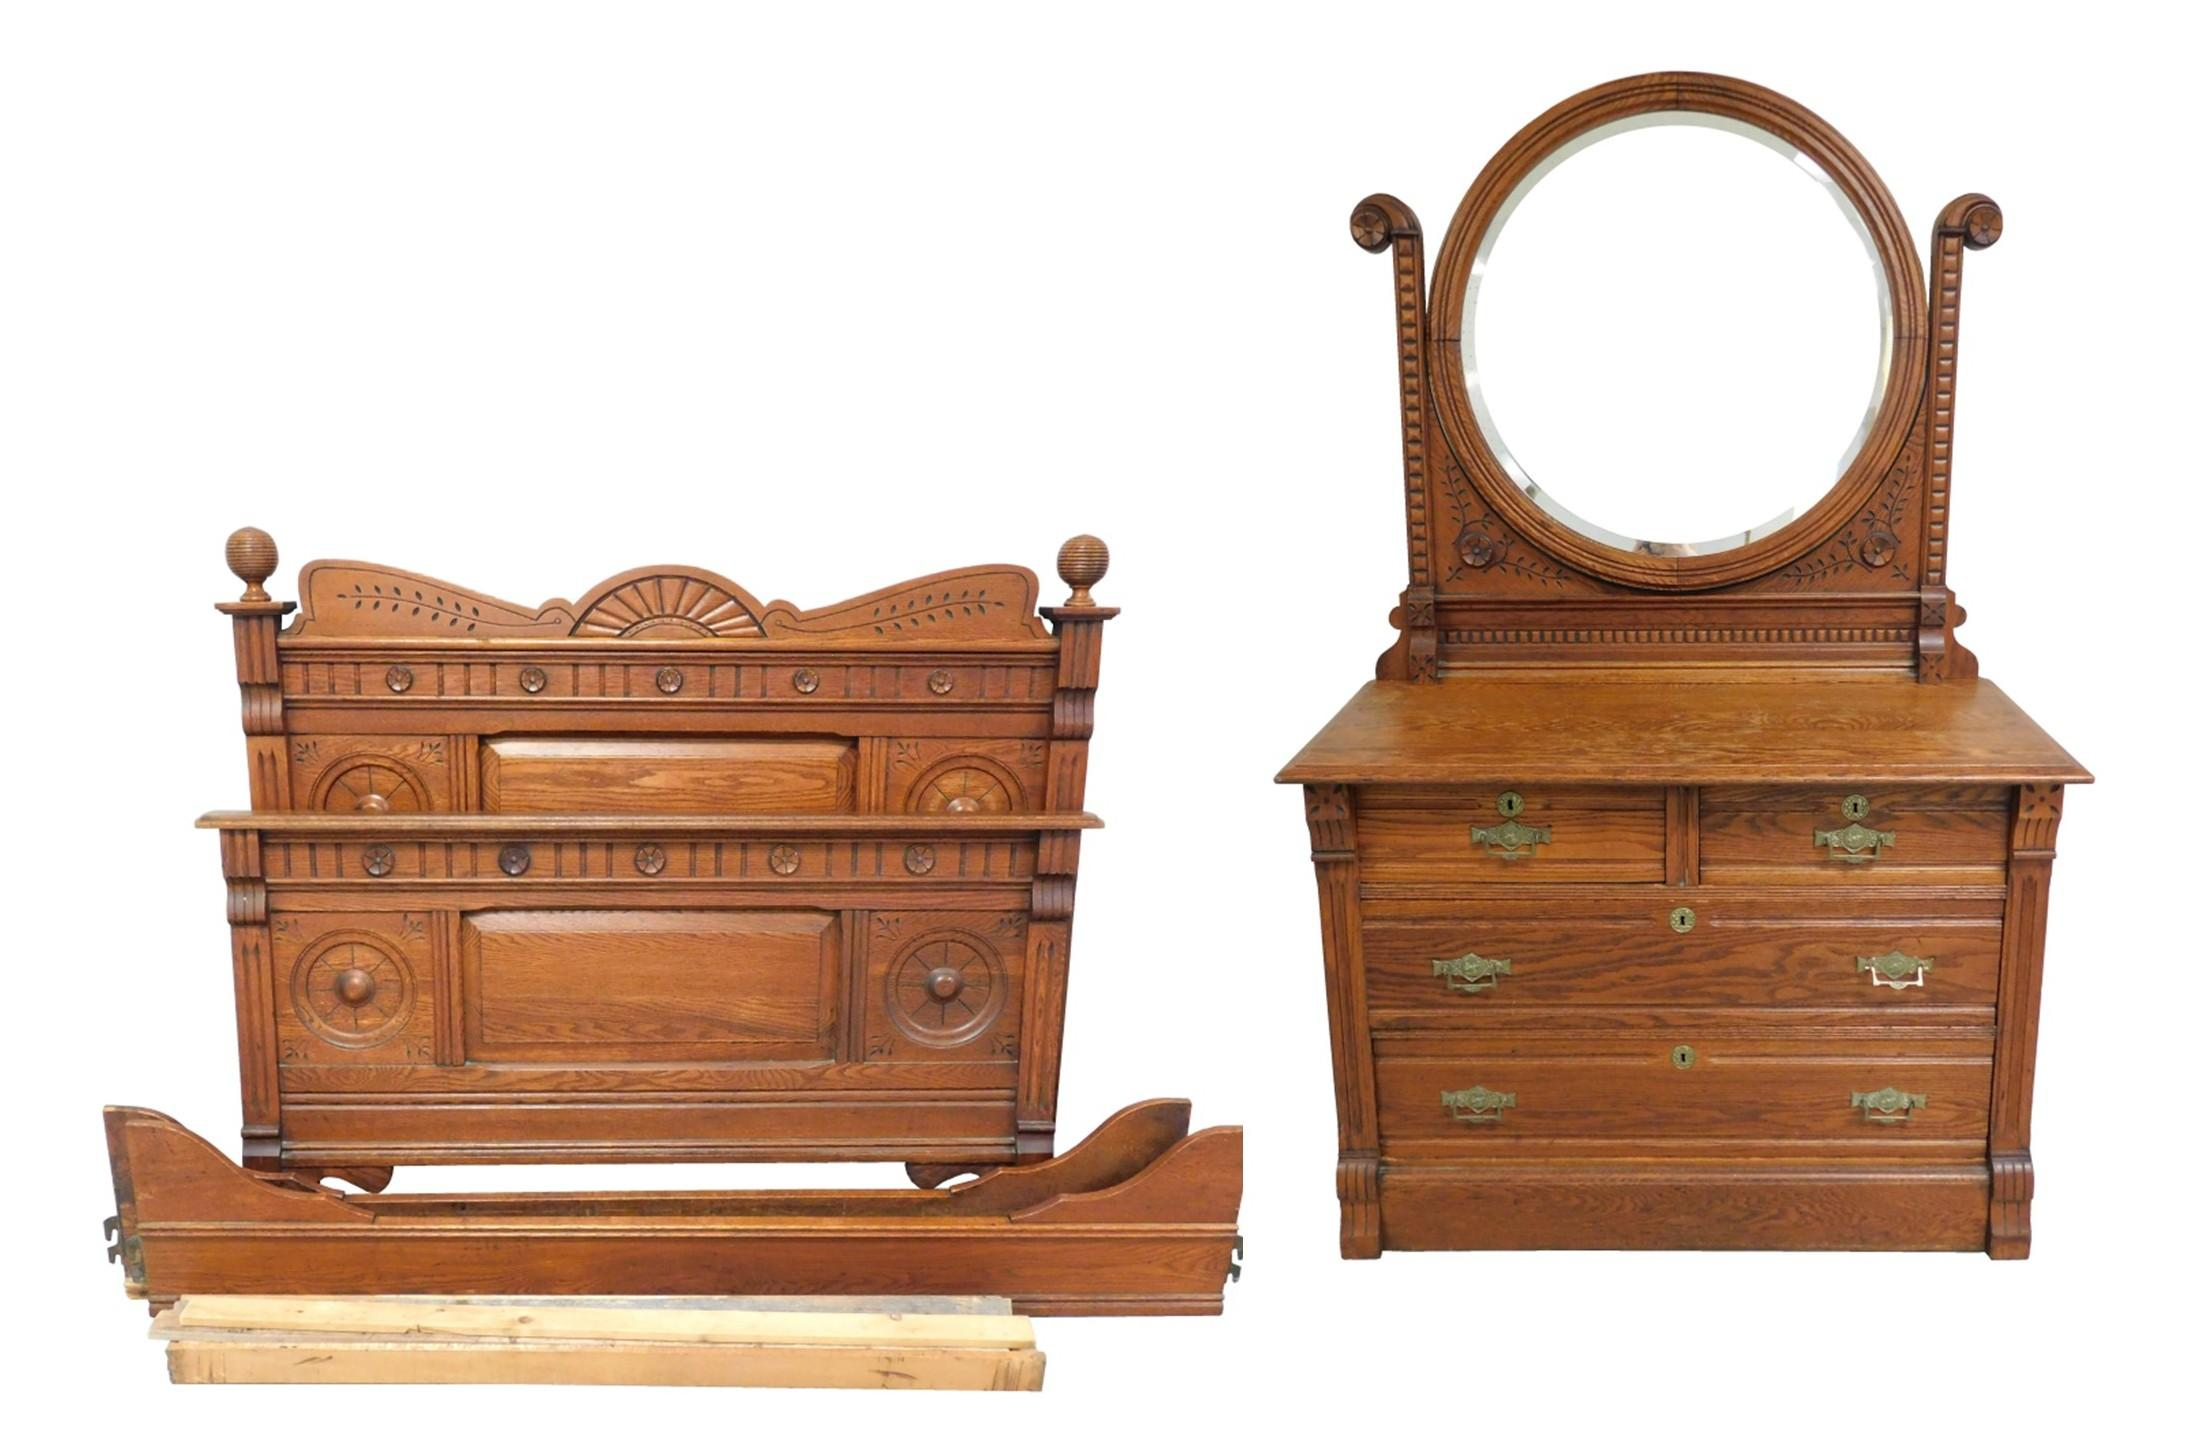 "Bed stead and bureau, Eastlake, oak: bureau with round beveled mirror, two drawers over two, 71"" h. x 43"" w. x 20"" d.; and full bed..."